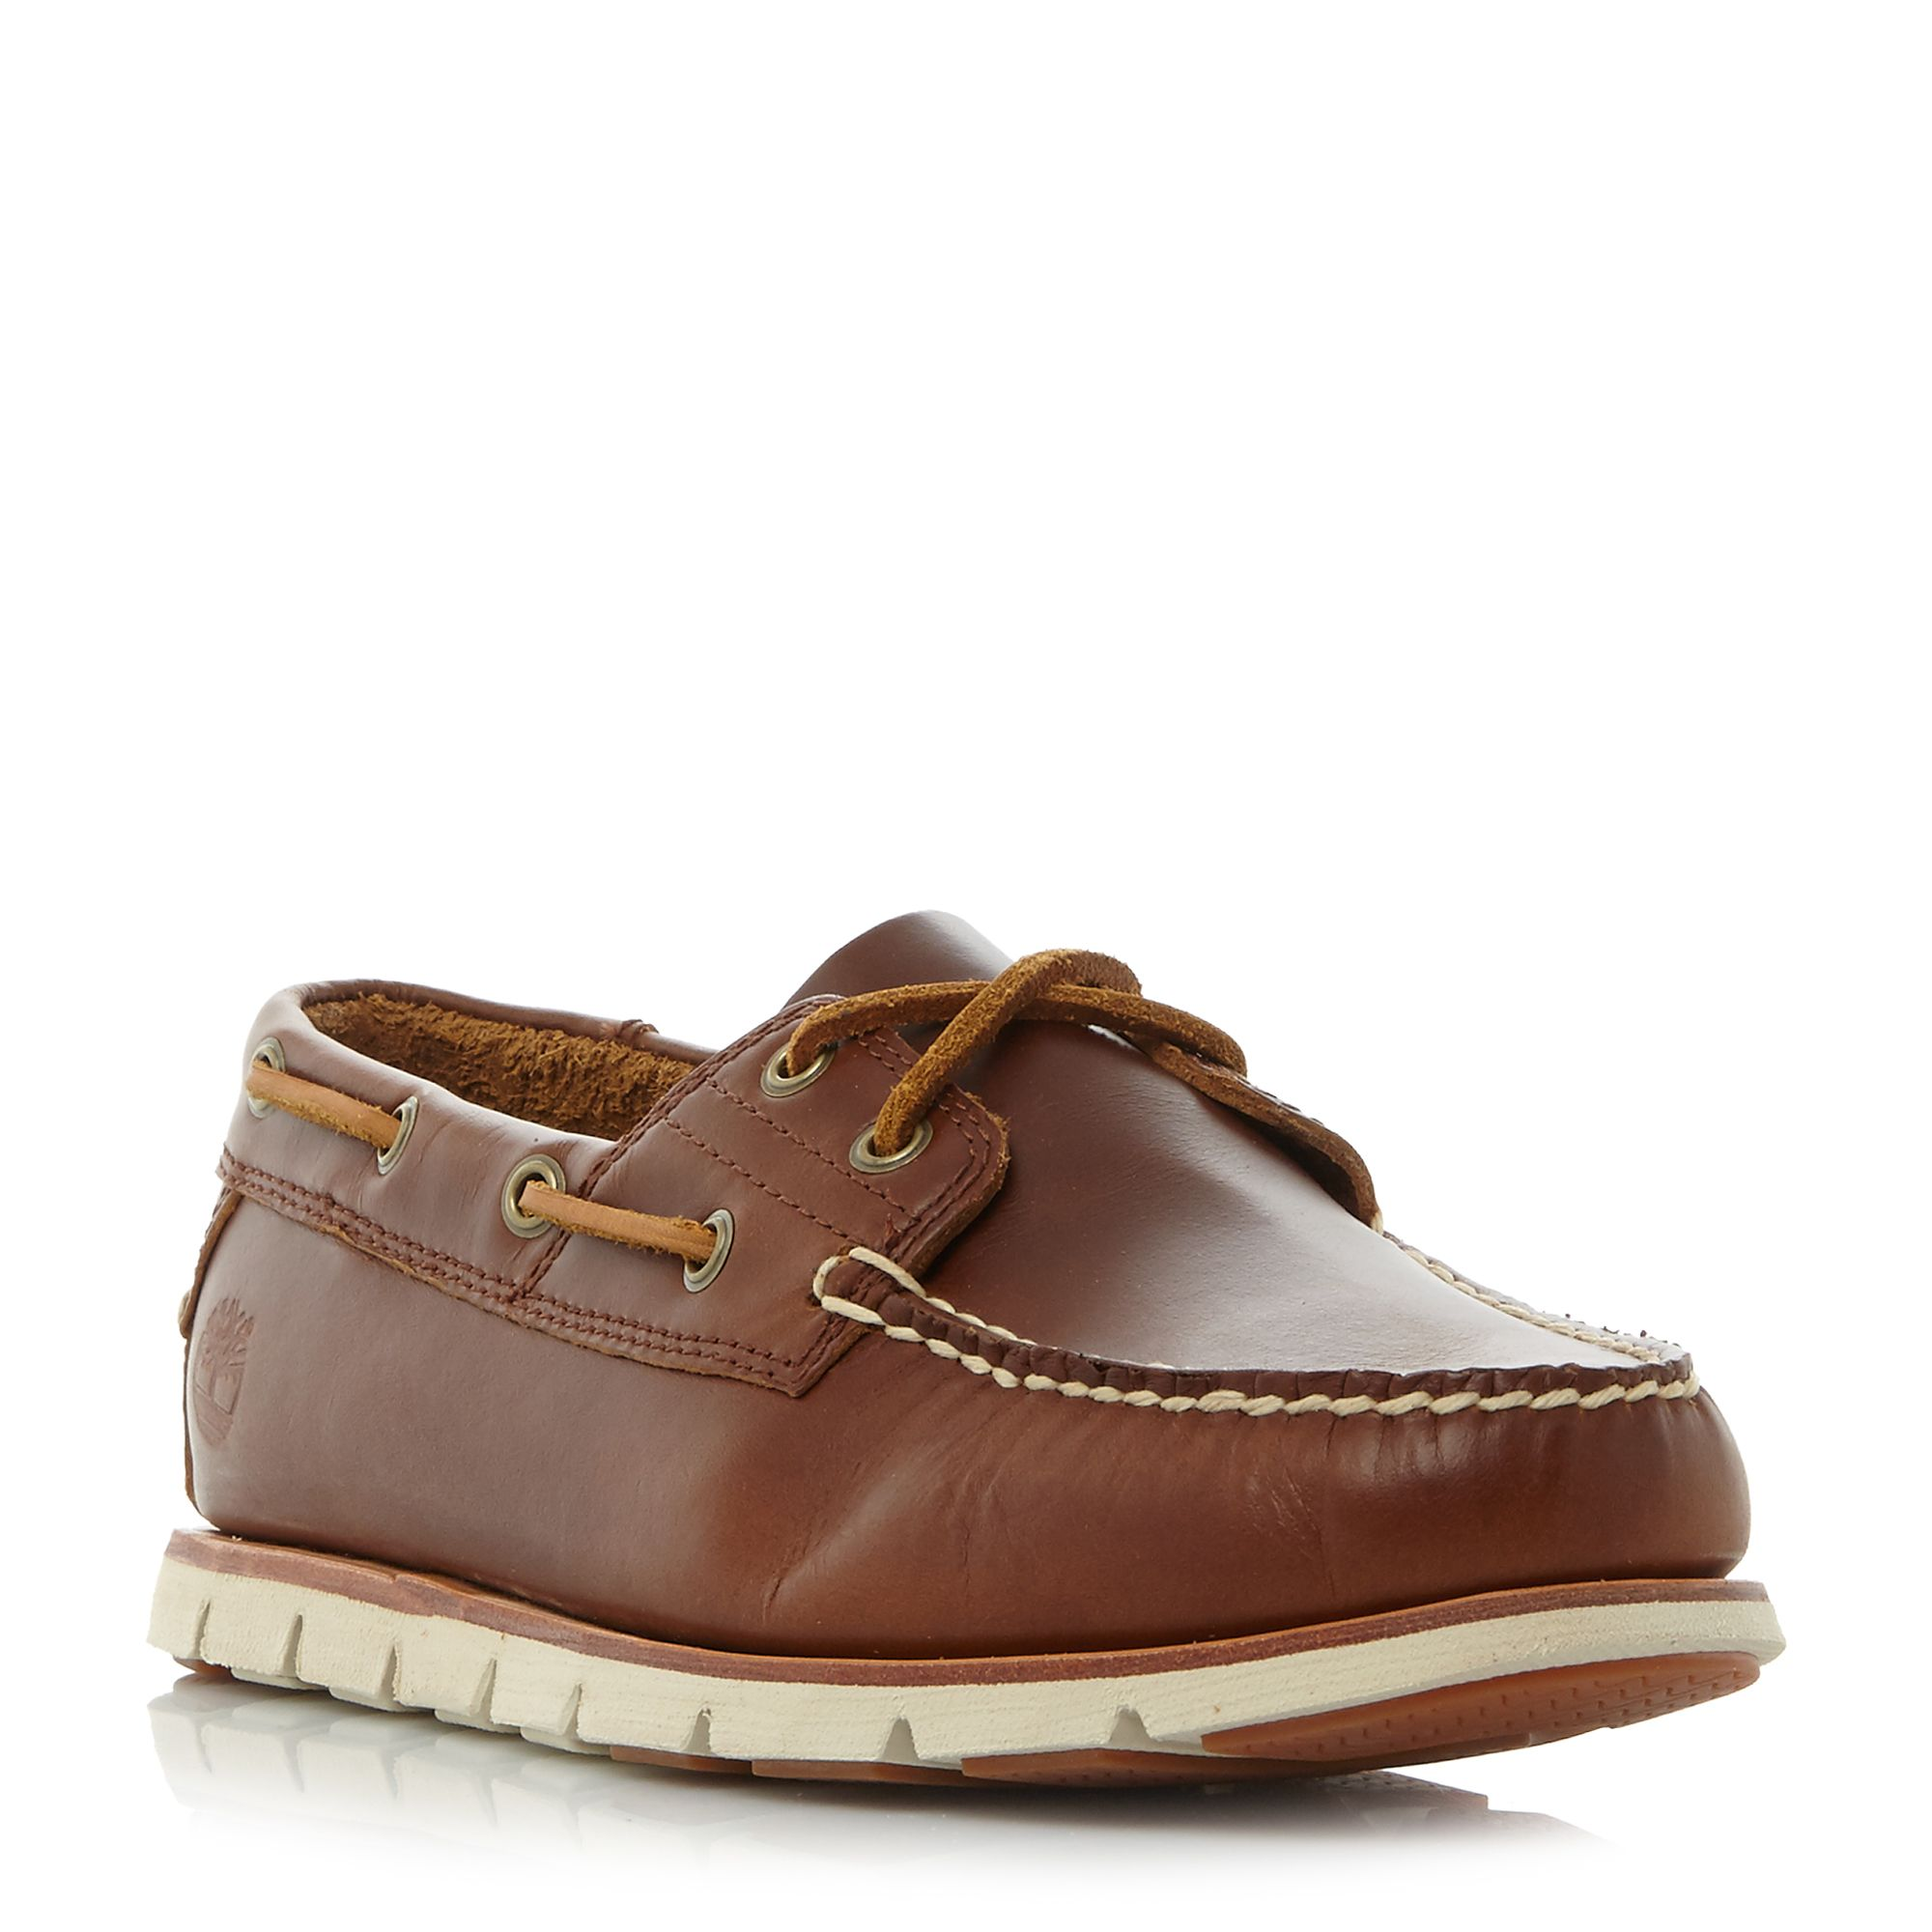 Timberland A1bhl cleated sole boat shoe Tan